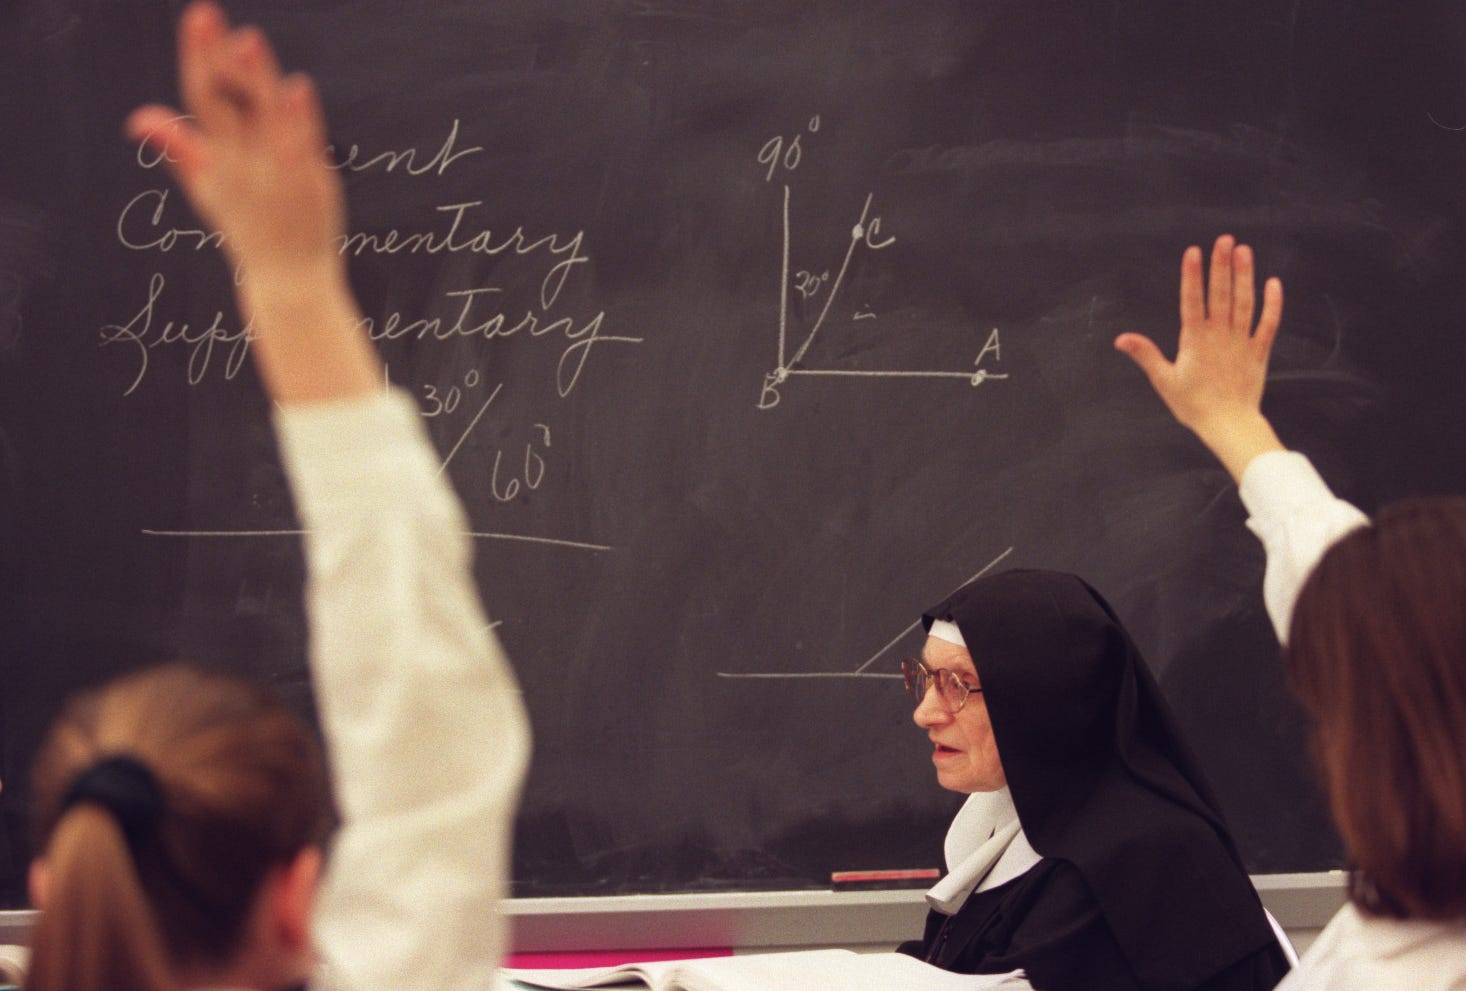 The Spiritus Sanctus Academy is a small Catholic grade school backed by Tom Monaghan that features daily mass, school uniforms, nuns in habits and daily religion class. Mother Regina Mary teaches 8th-grade math on April 24, 1997.